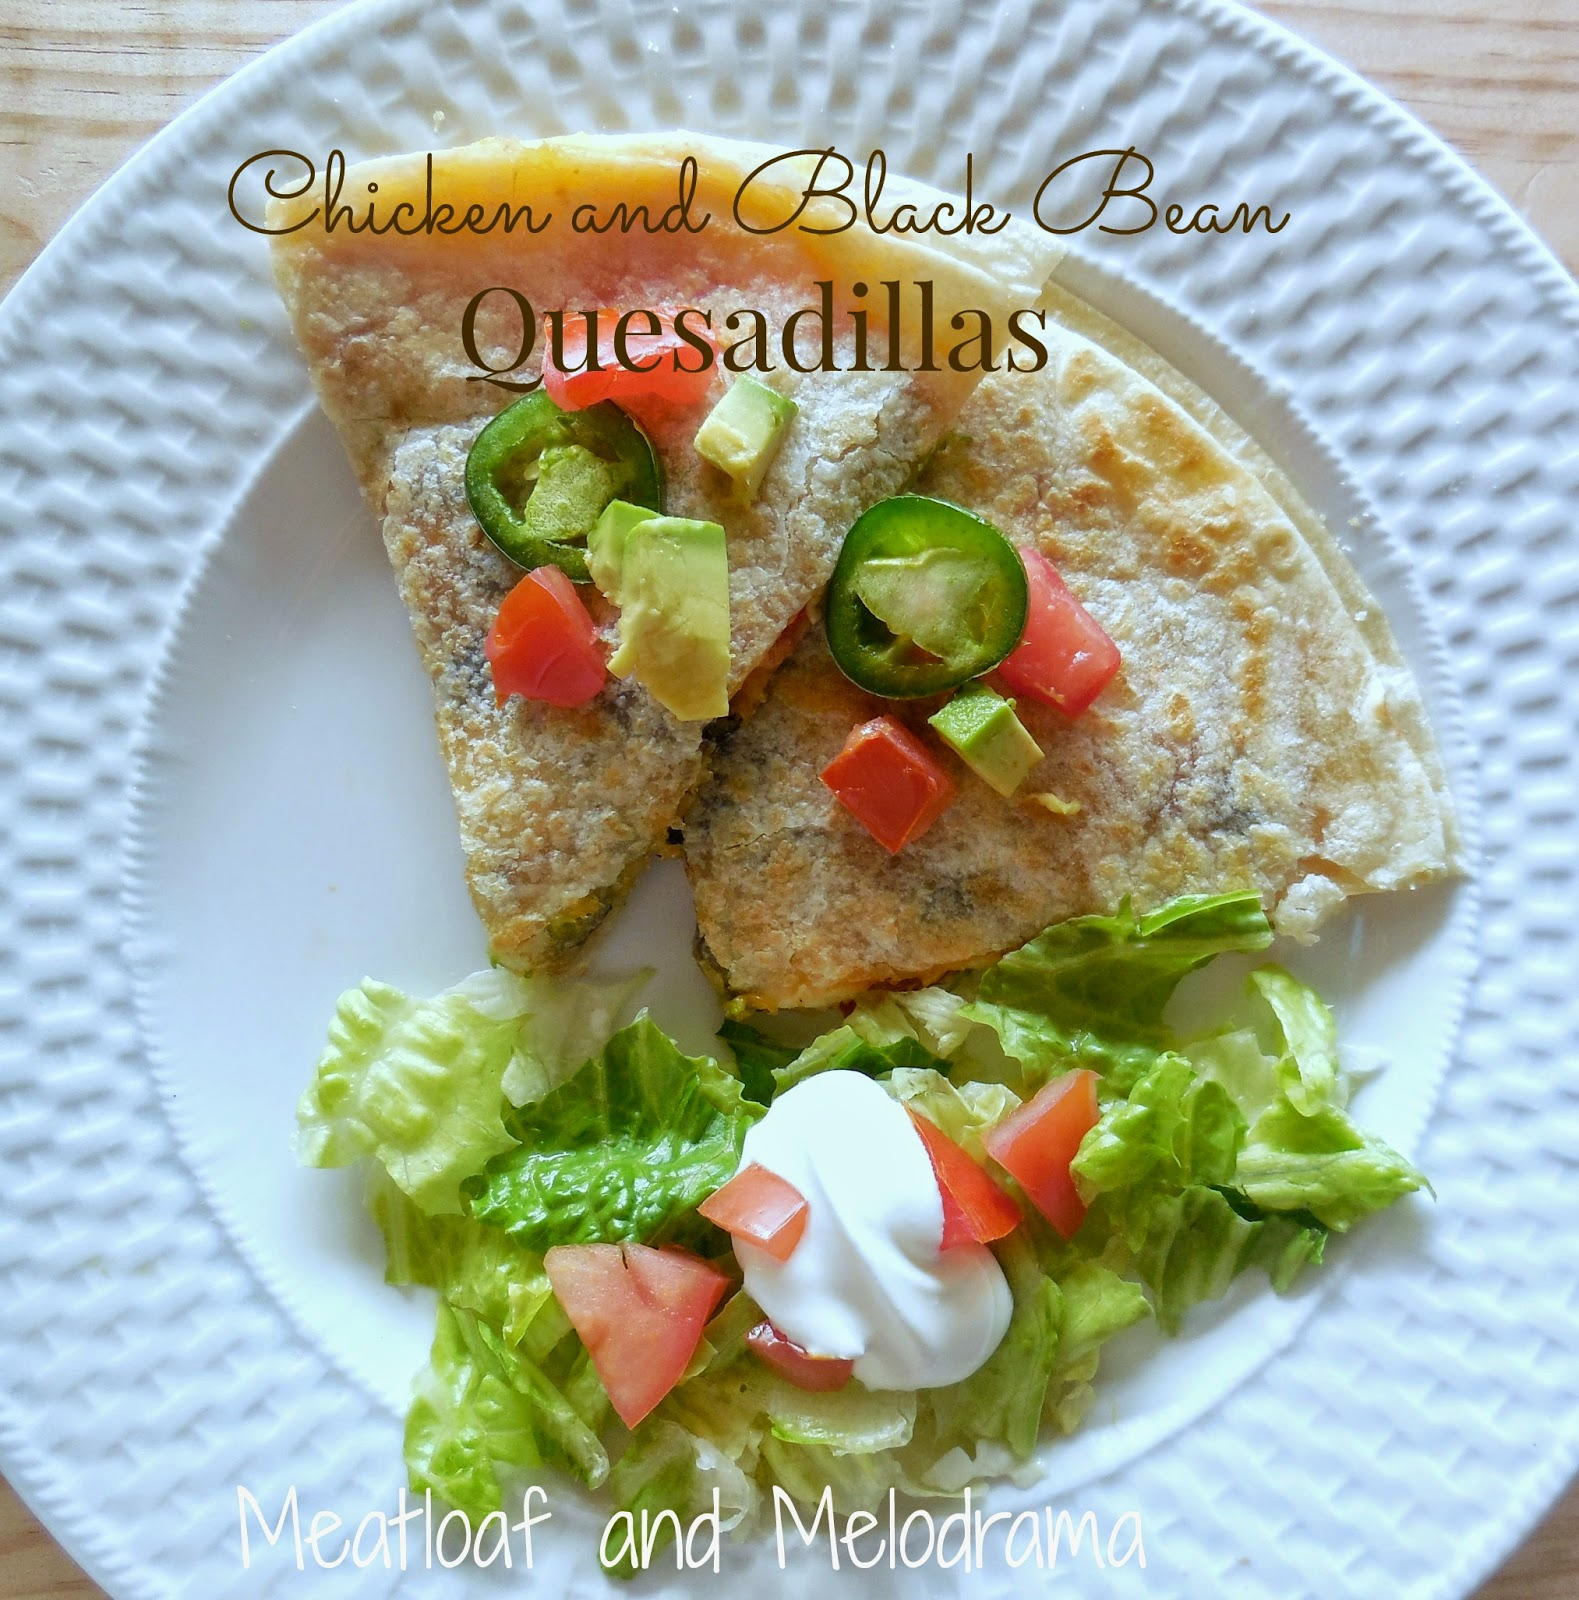 chicken and black bean quesadillas with jalapenos, tomatoes, sour cream and lettuce